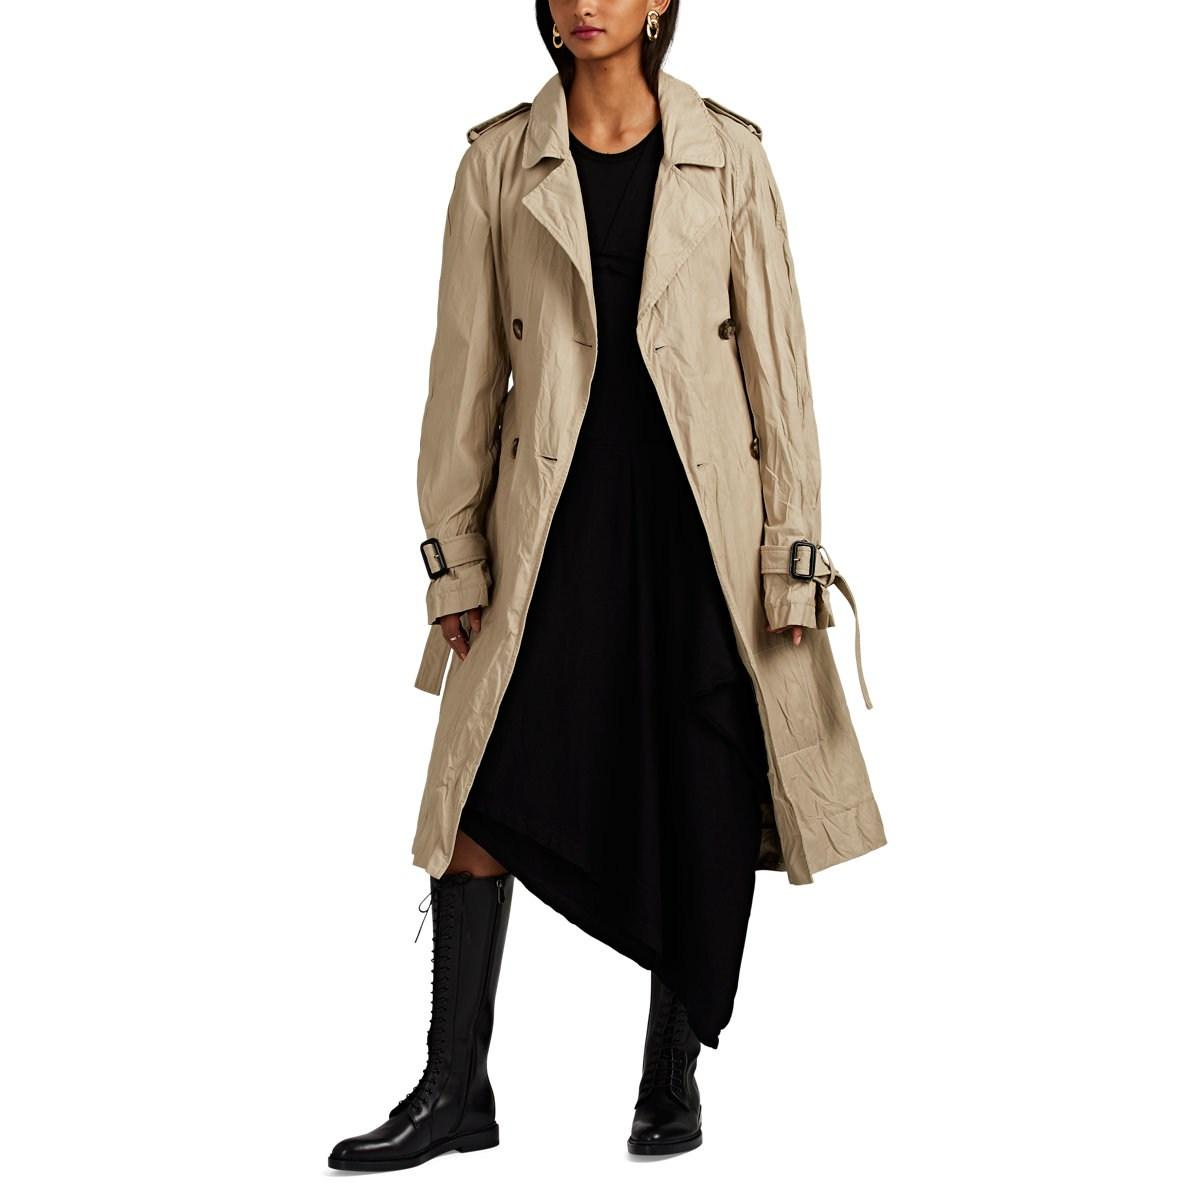 Lyst - JW Anderson Crinkled Double-breasted Trench Coat in